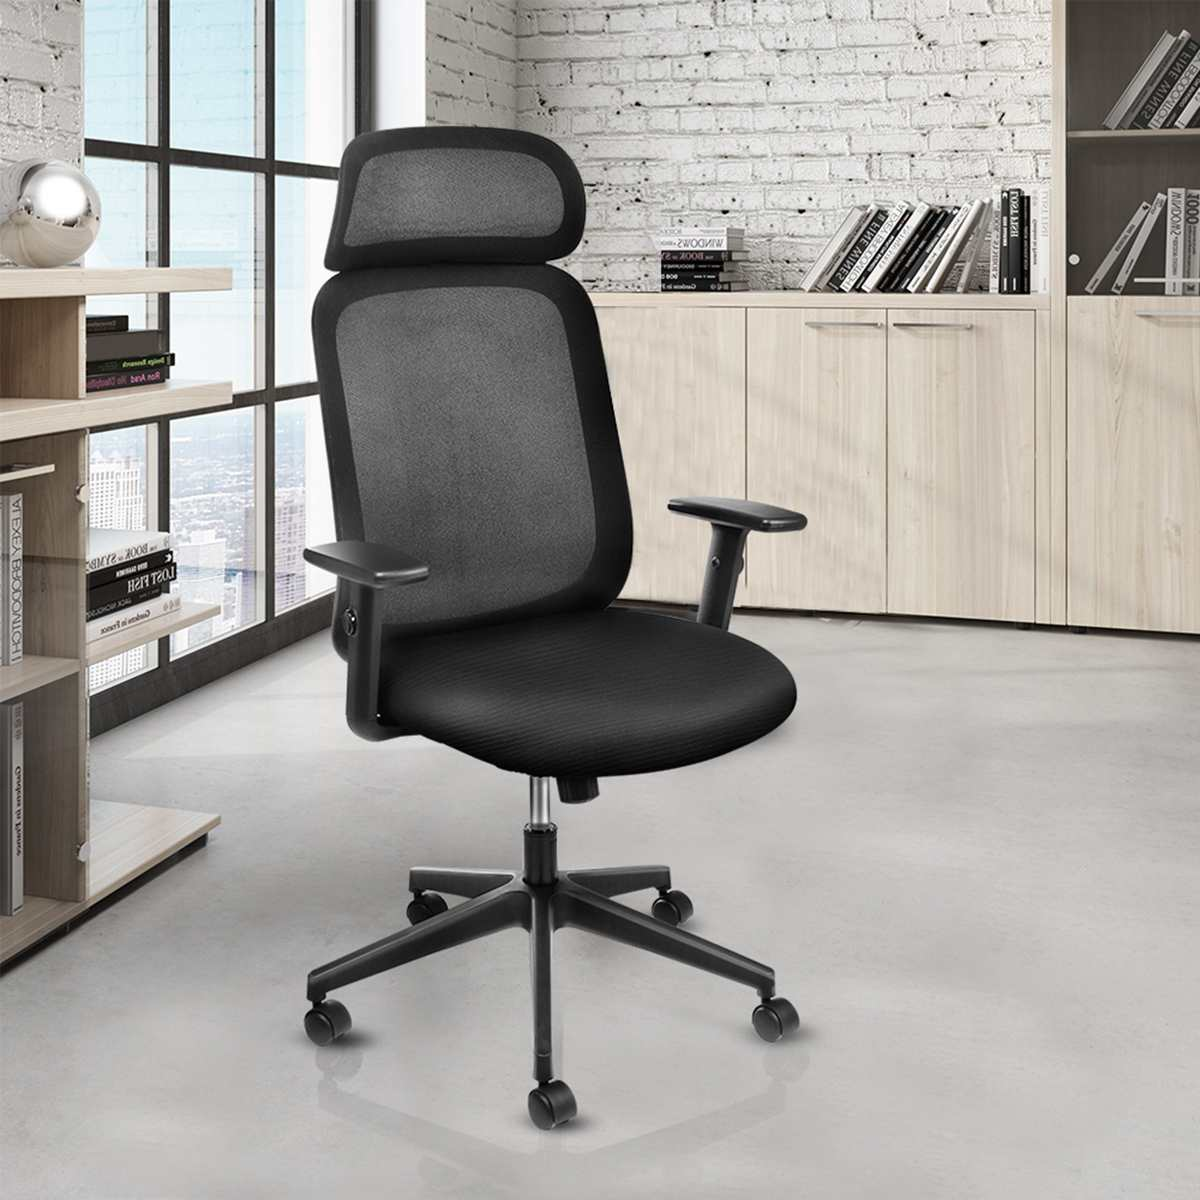 Ergonomic Computer Chair Home Computer Chair Conference Office Staff Chair Modern Student Dormitory Swivel Chair